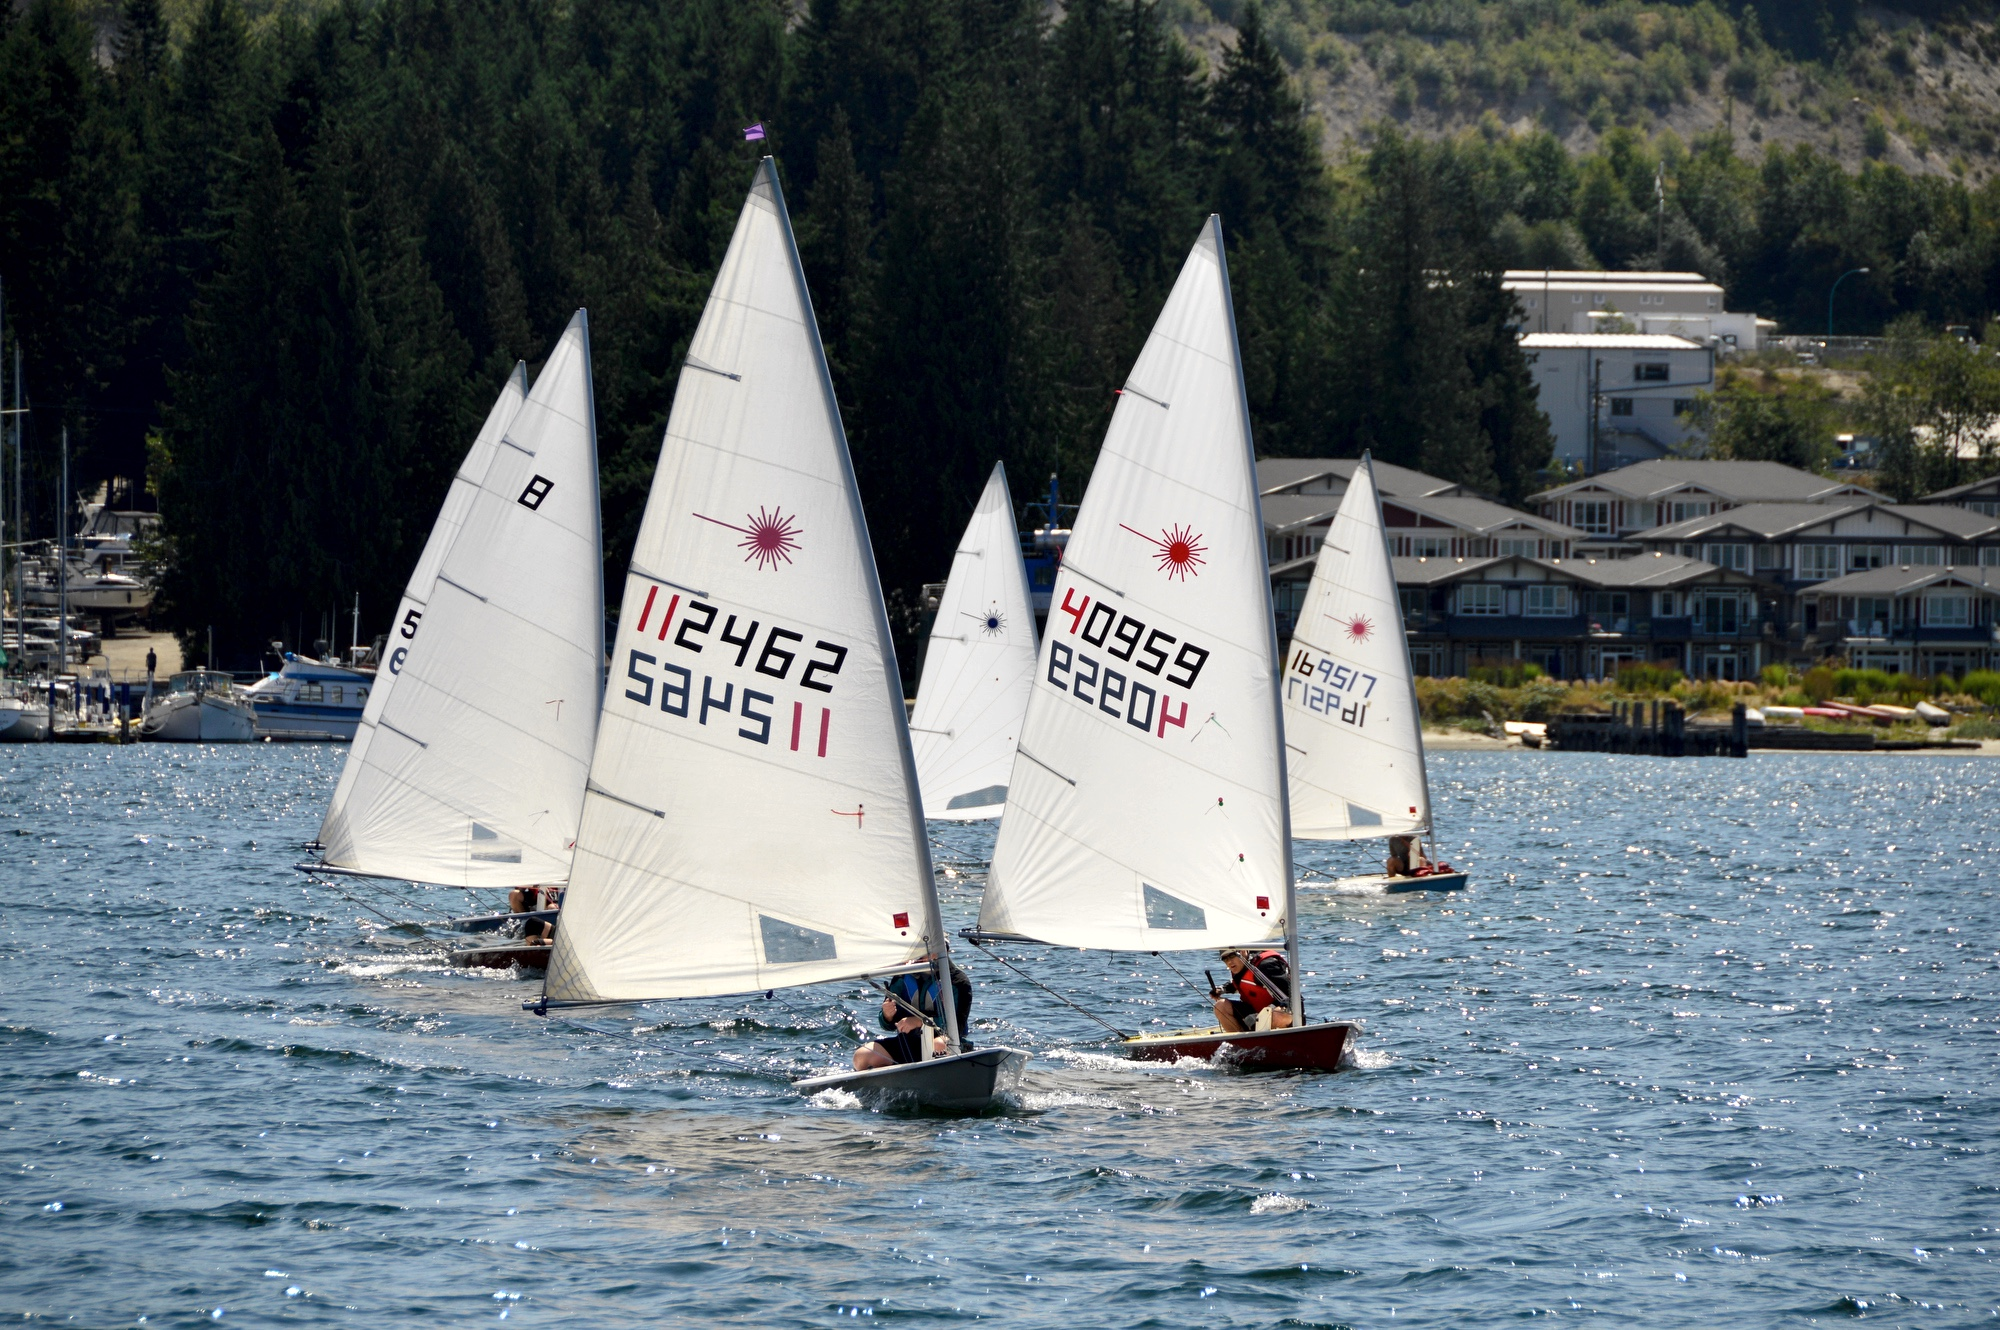 Sailors racing on a beam reach during the 6th Annual Poise Cove Regatta July 16th, 2017